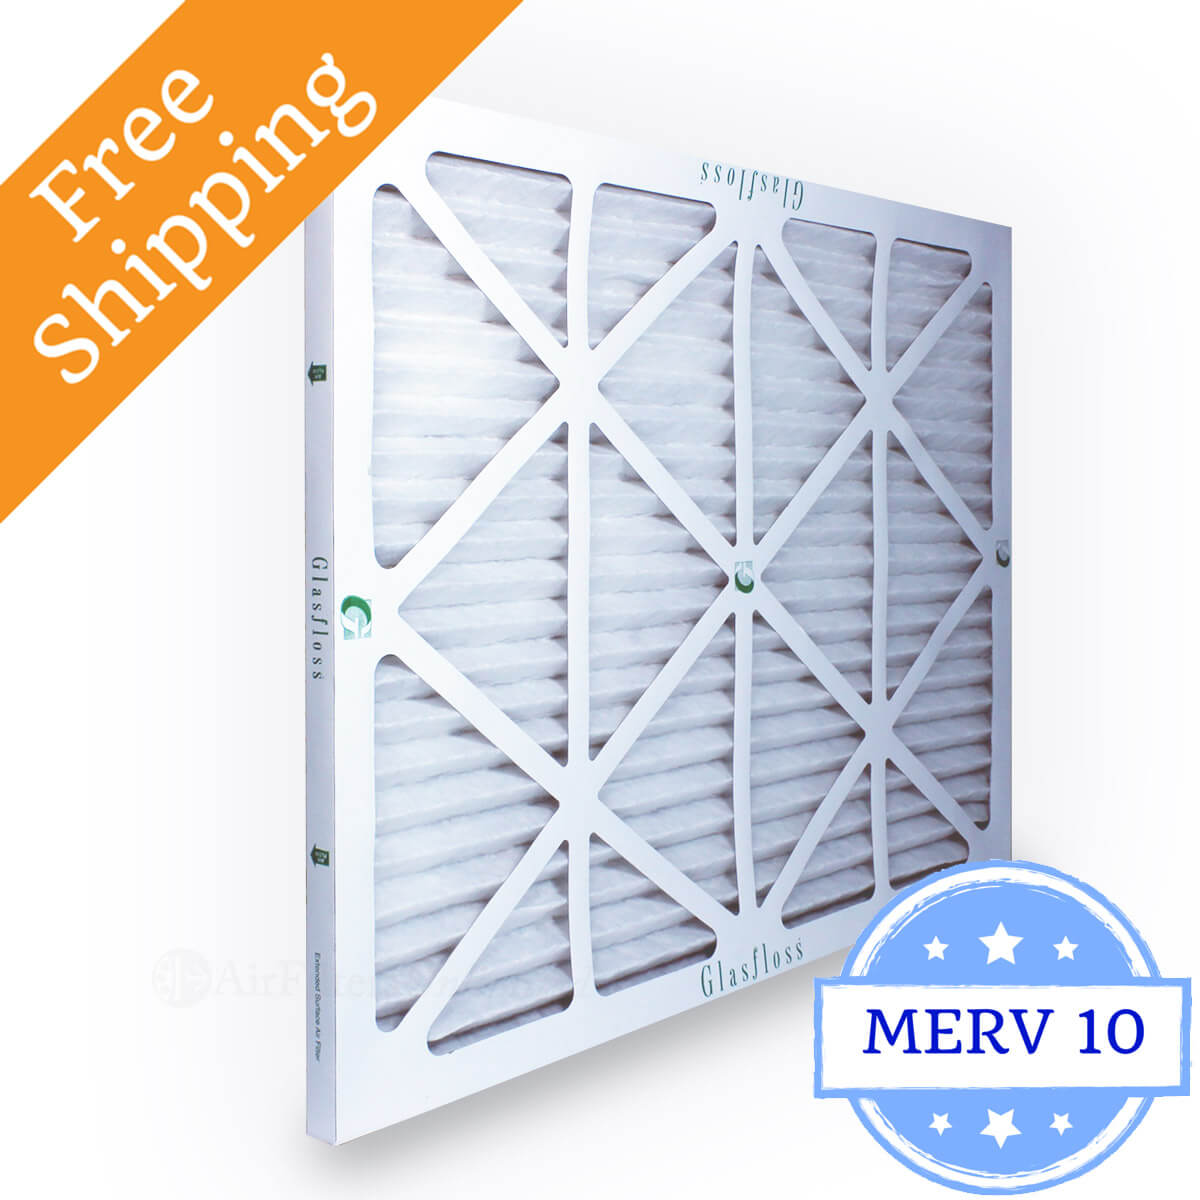 Glasfloss 20x30x1 Air Filter ZL Series